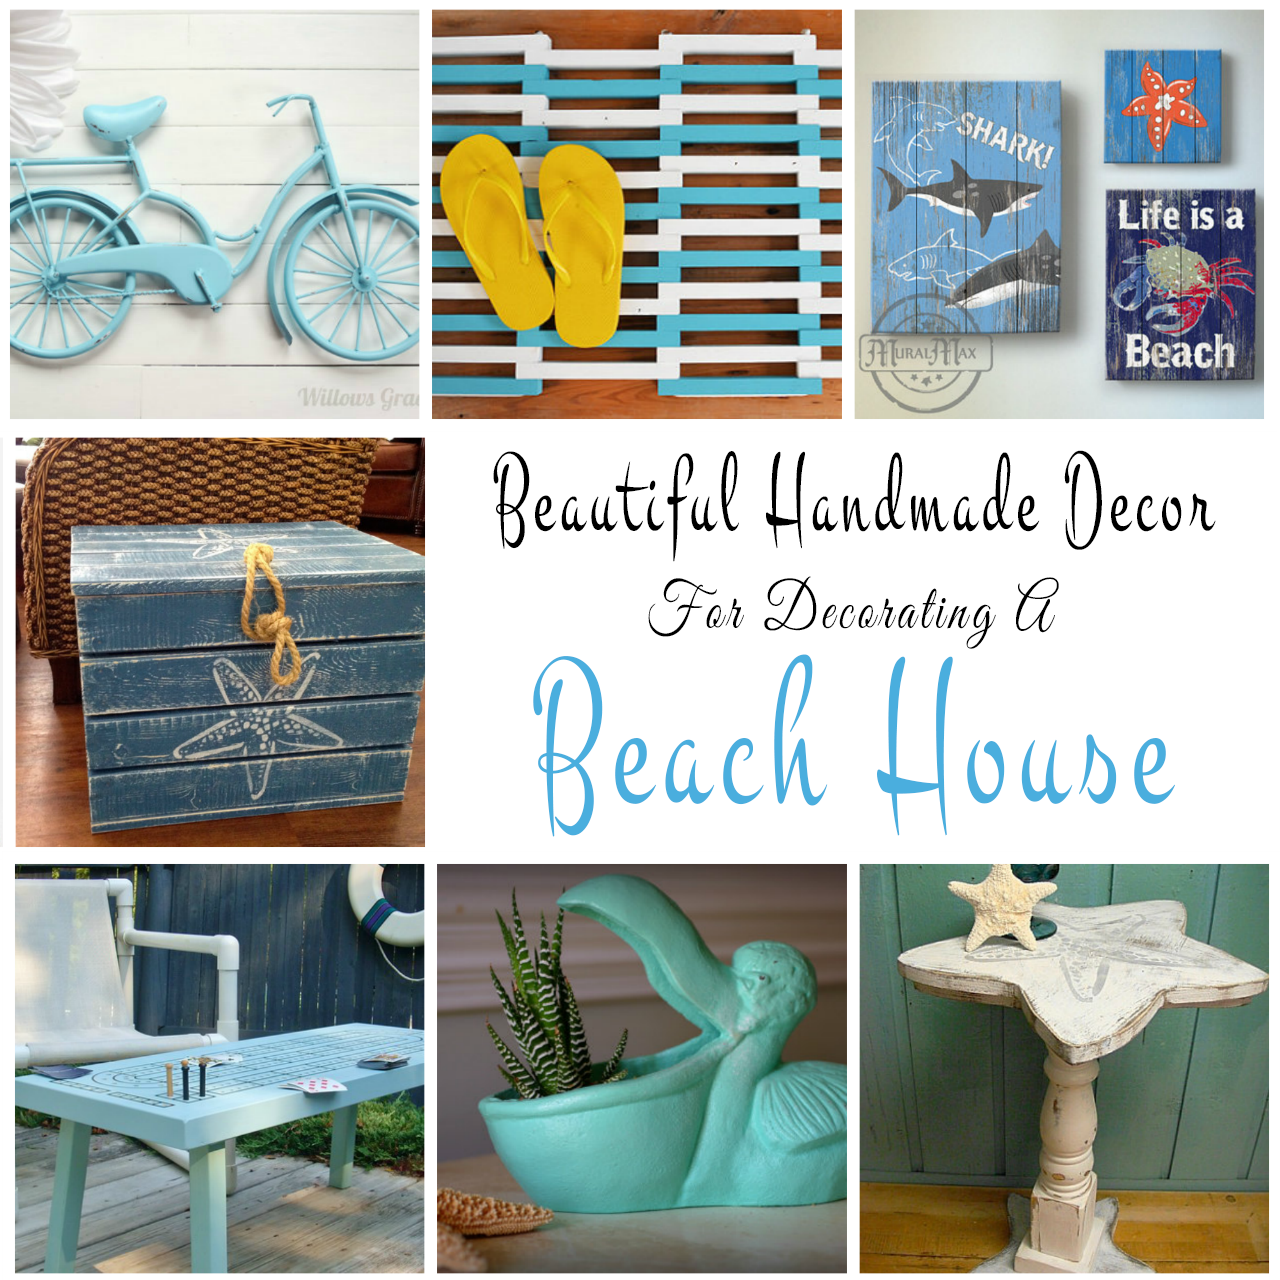 Handmade decor ideas for decorating a beach house for Home decoration tips